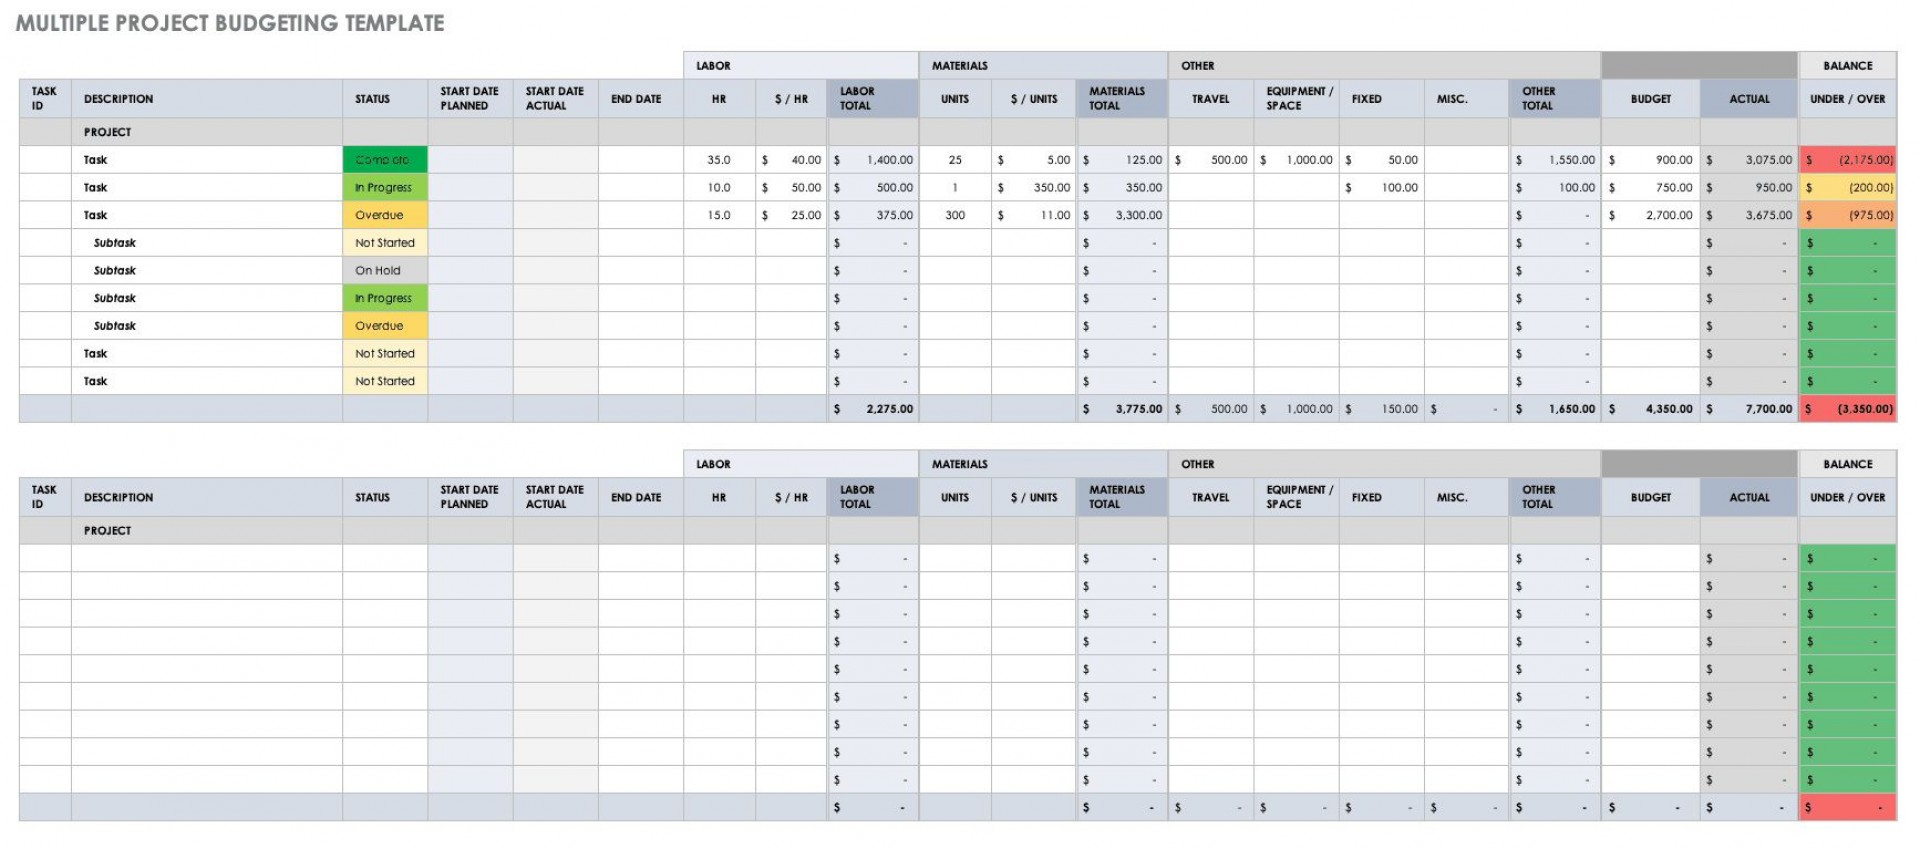 003 Simple Multiple Project Tracking Template Excel High Resolution  Free Download Xl Analysistabs-multiple-project-tracking-template-excel-2003-version1920